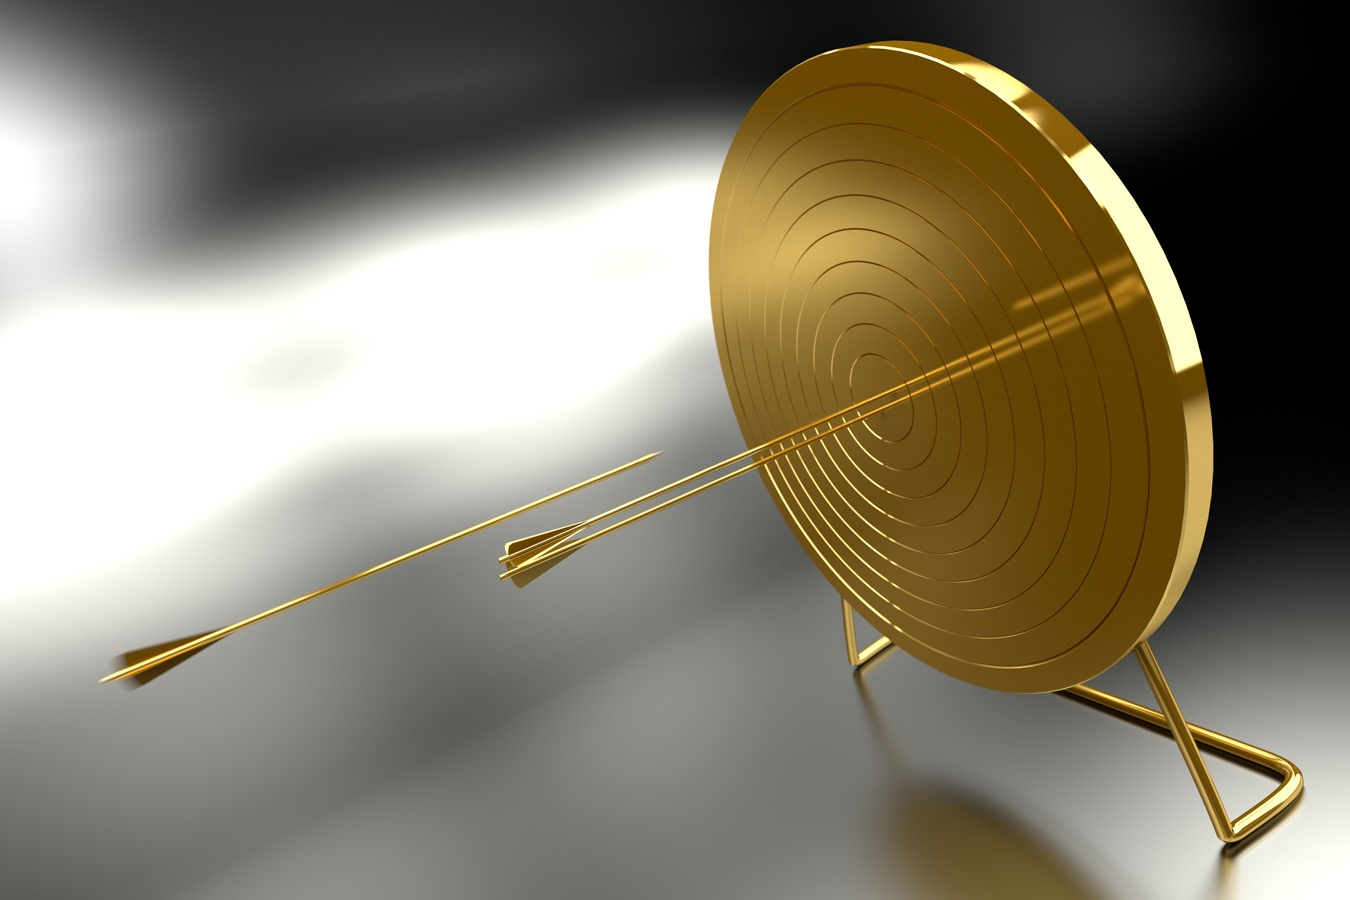 ADD-TO-CLOSELY-MONITOR-gold-target-arrow-2886224.jpg